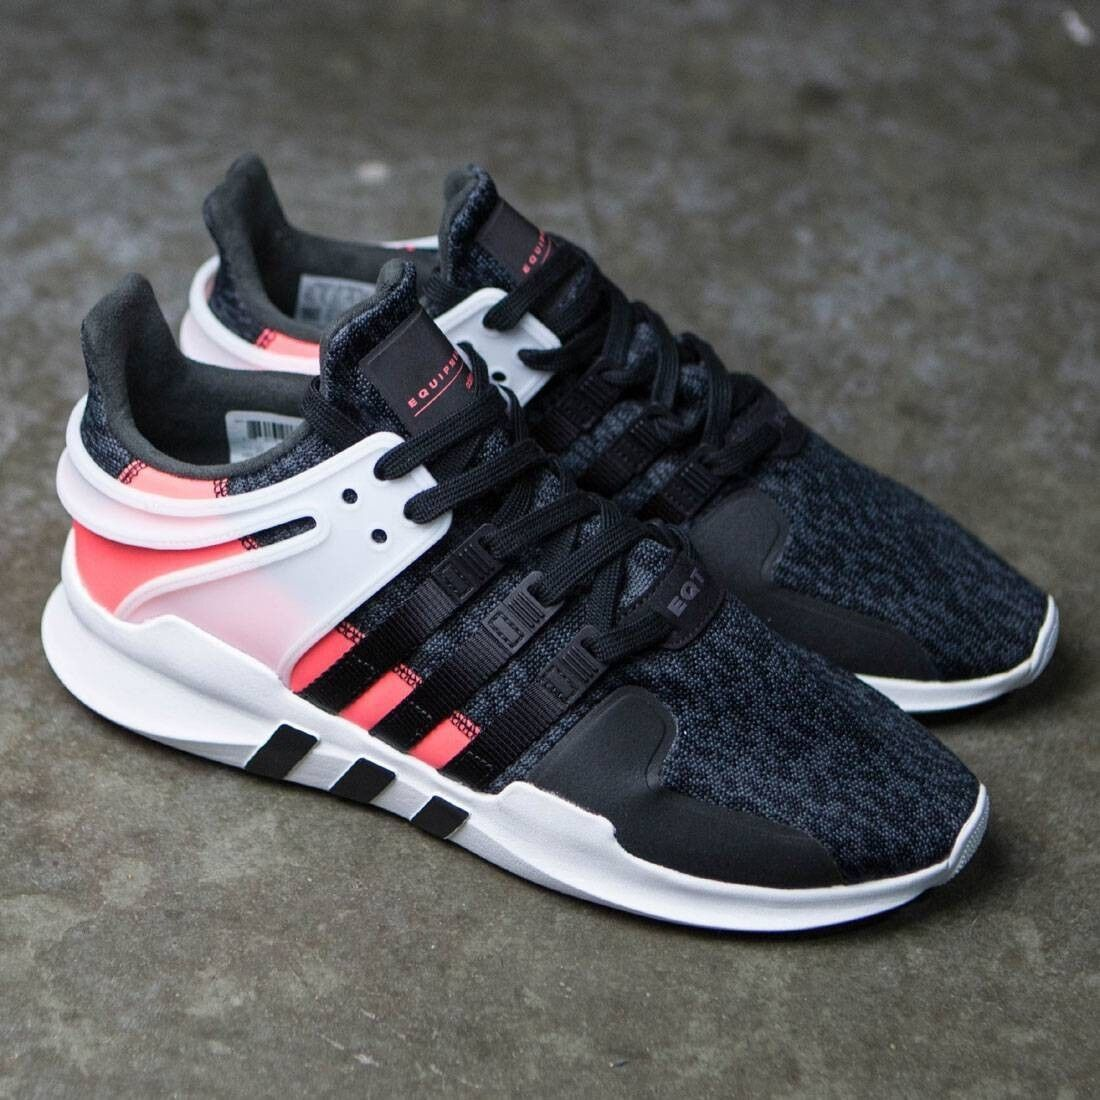 Adidas EQT Support ADV Turbo Red Size 11. BB1302 Yeezy ultra boost nmd